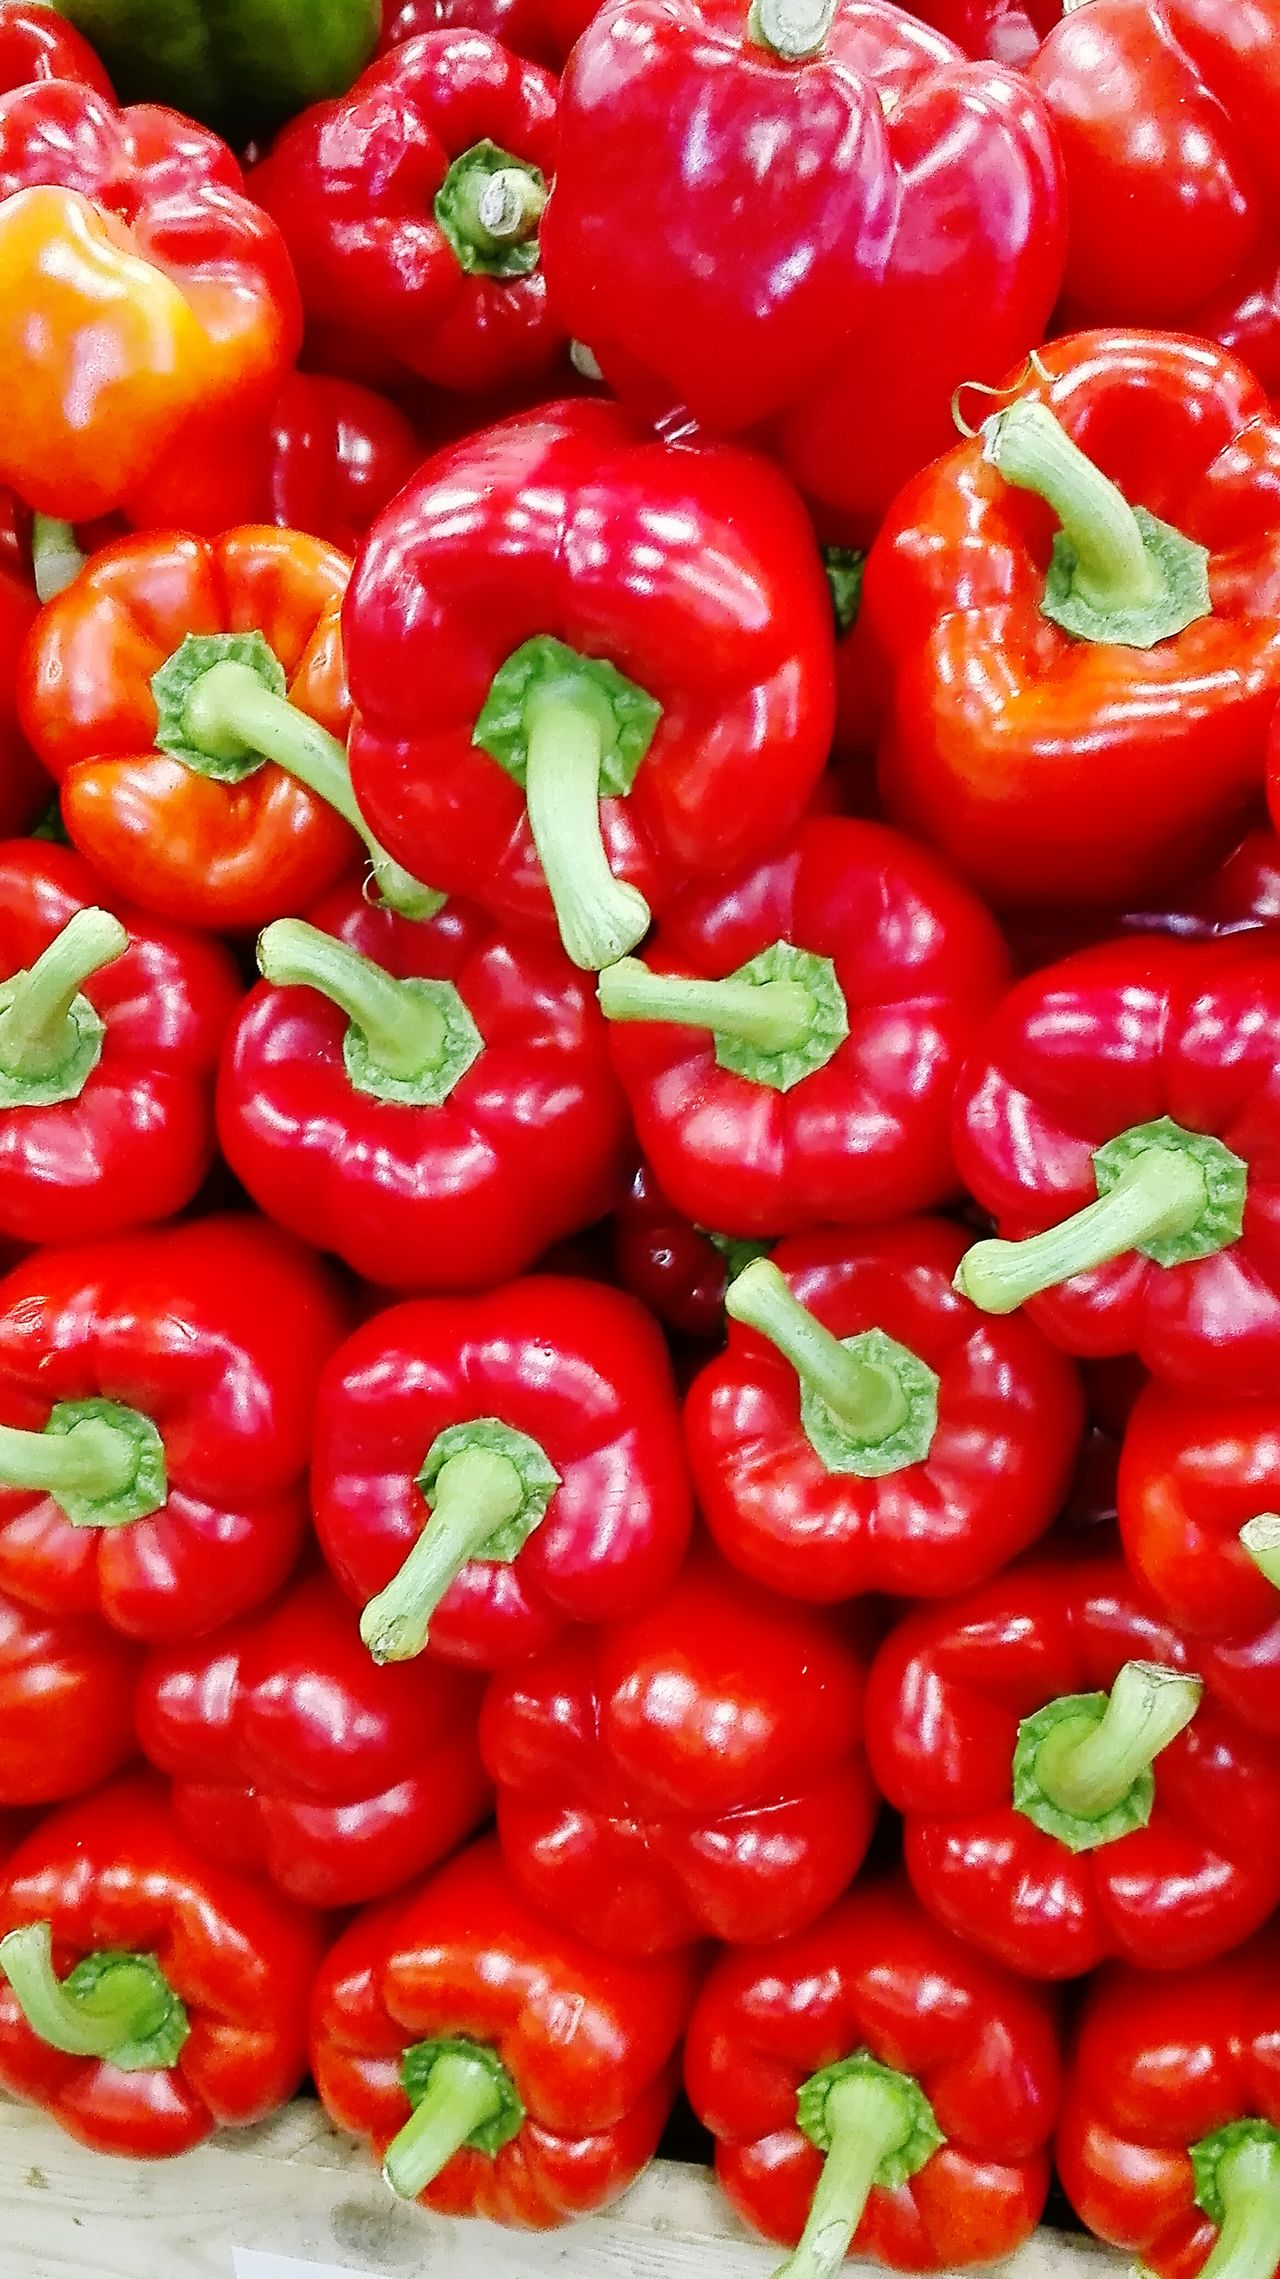 Red Vegetable Food Full Frame Backgrounds Healthy Eating Freshness Food And Drink Abundance Pepper - Vegetable Raw Food No People Business Finance And Industry Red Bell Pepper Summer Market Close-up Nature Indoors  Day